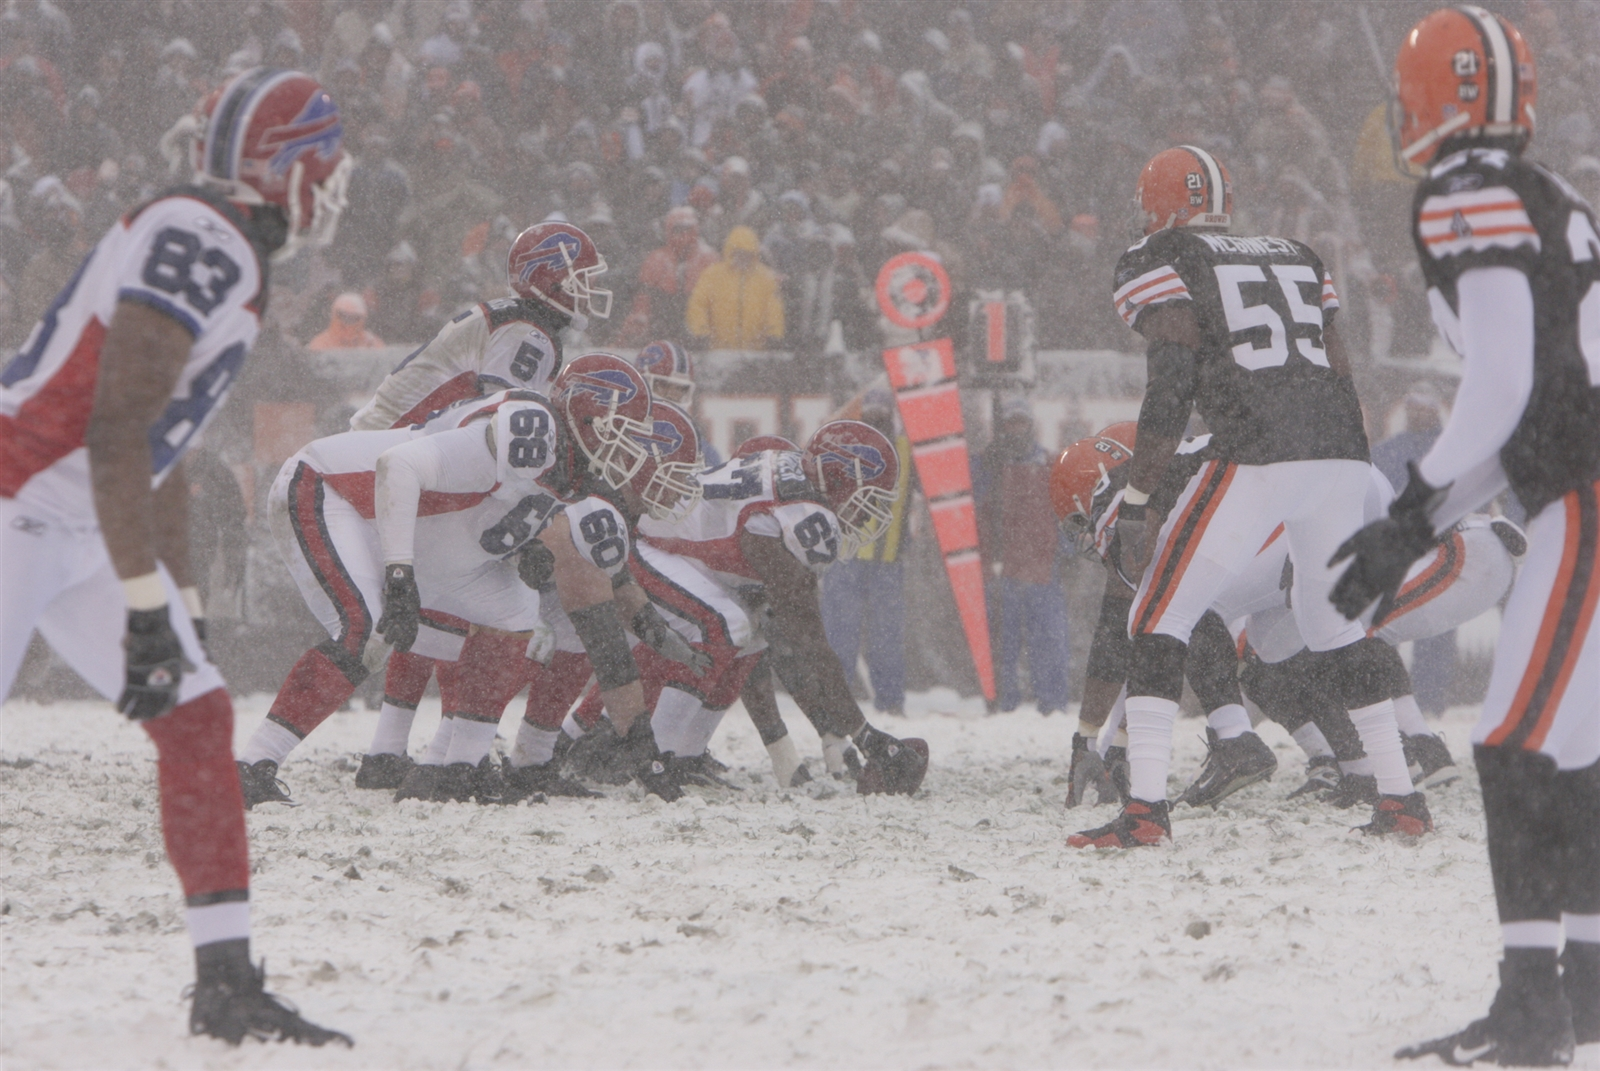 When the Cleveland Browns and Buffalo Bills get together, hilarity ensues. The Lake Erie neighbors have played some memorably horrible games, including an 8-0 victory by the Browns in a blizzard almost nine years ago to the day (Dec. 16, 2007 in Cleveland).